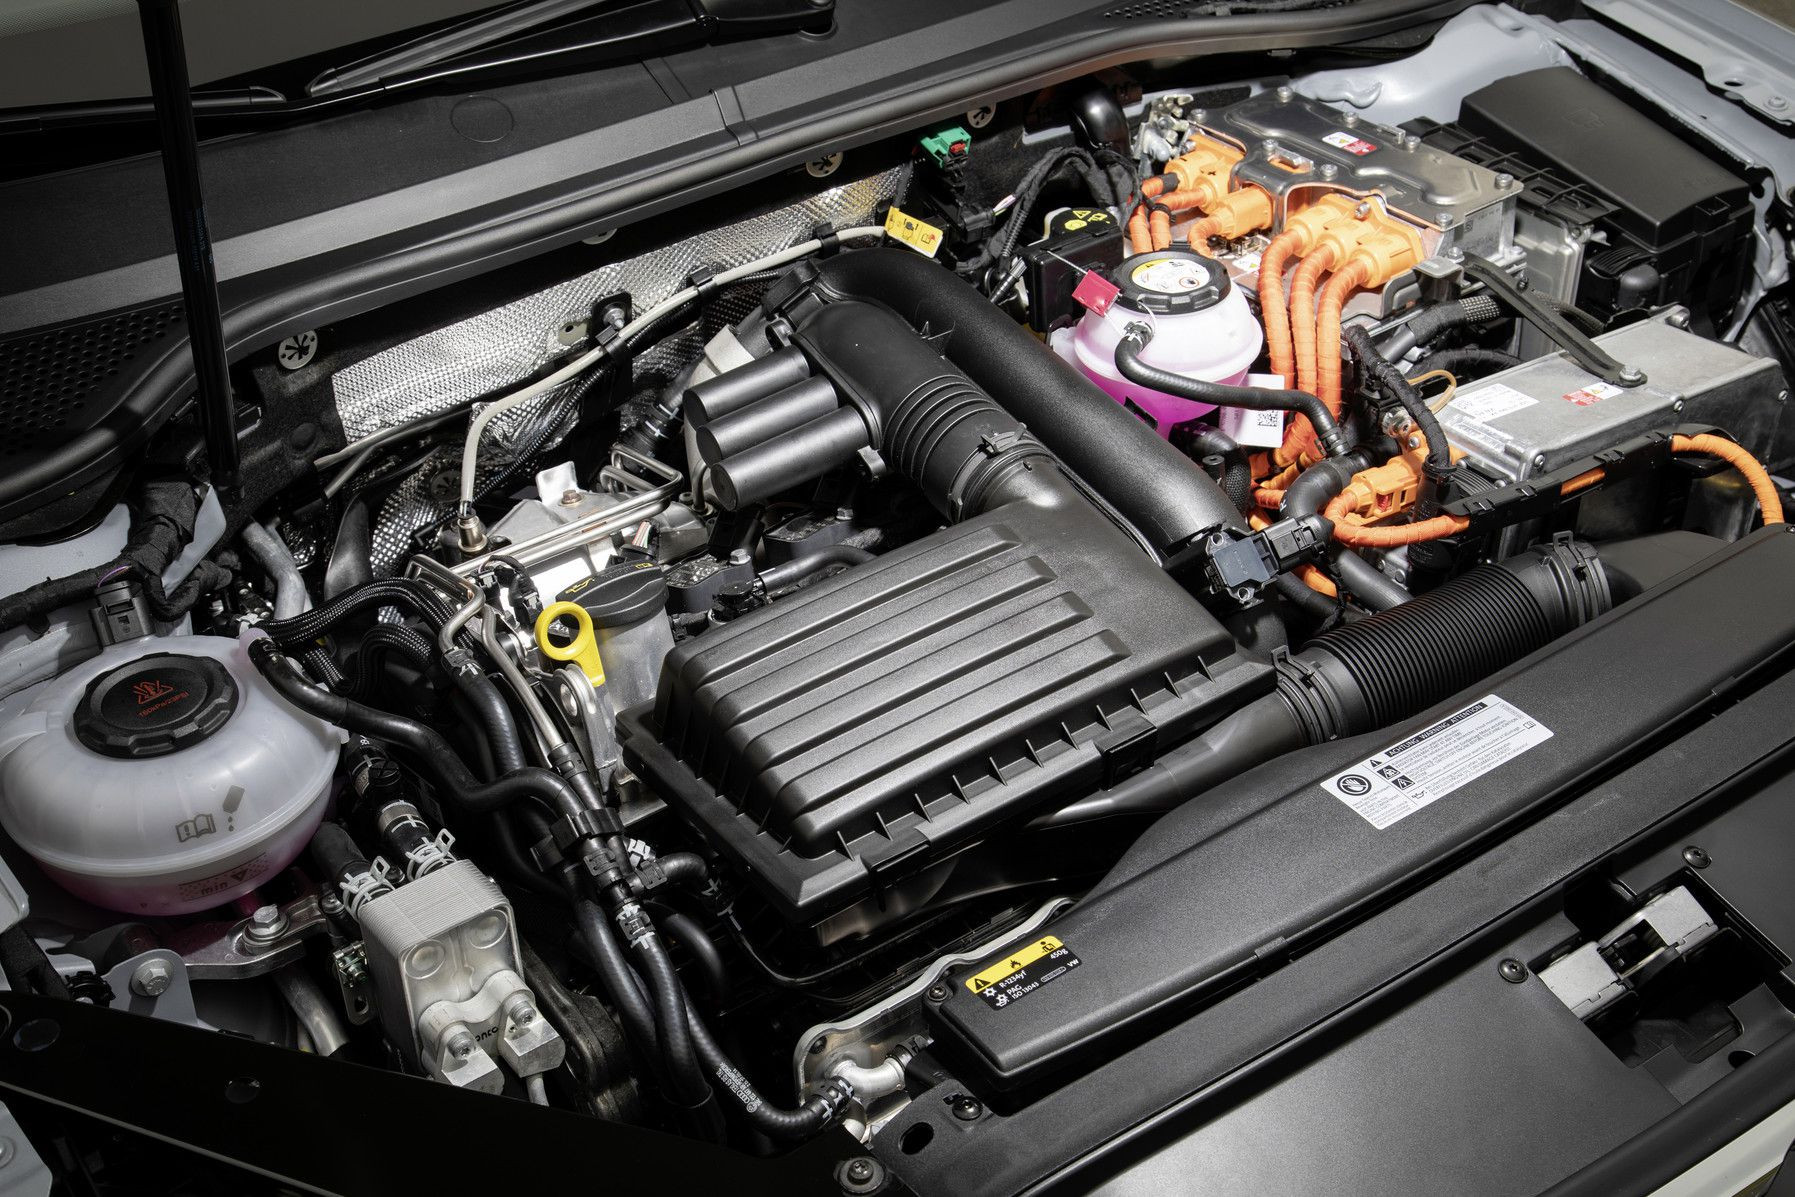 Under the bonnet - VW Passat